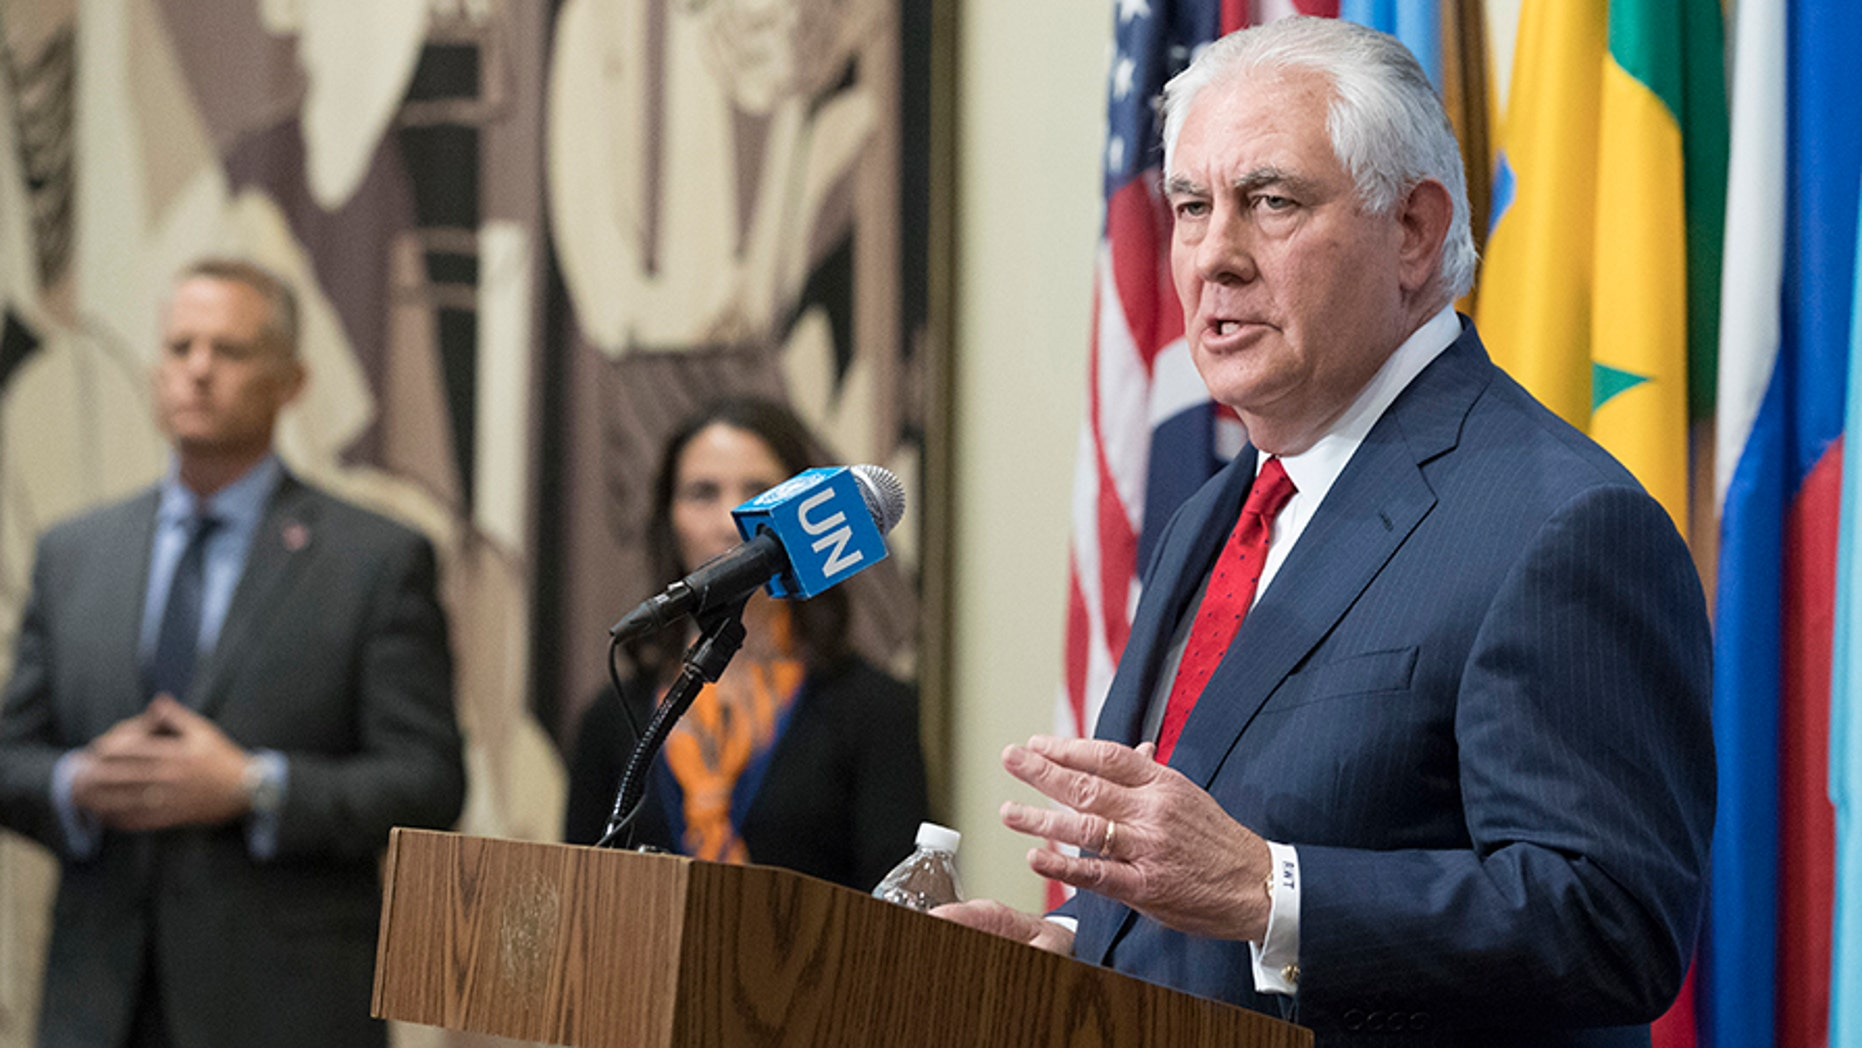 Secretary of State Rex Tillerson has been rumored to be on the outs with the Trump administration, but the White House has denied it.